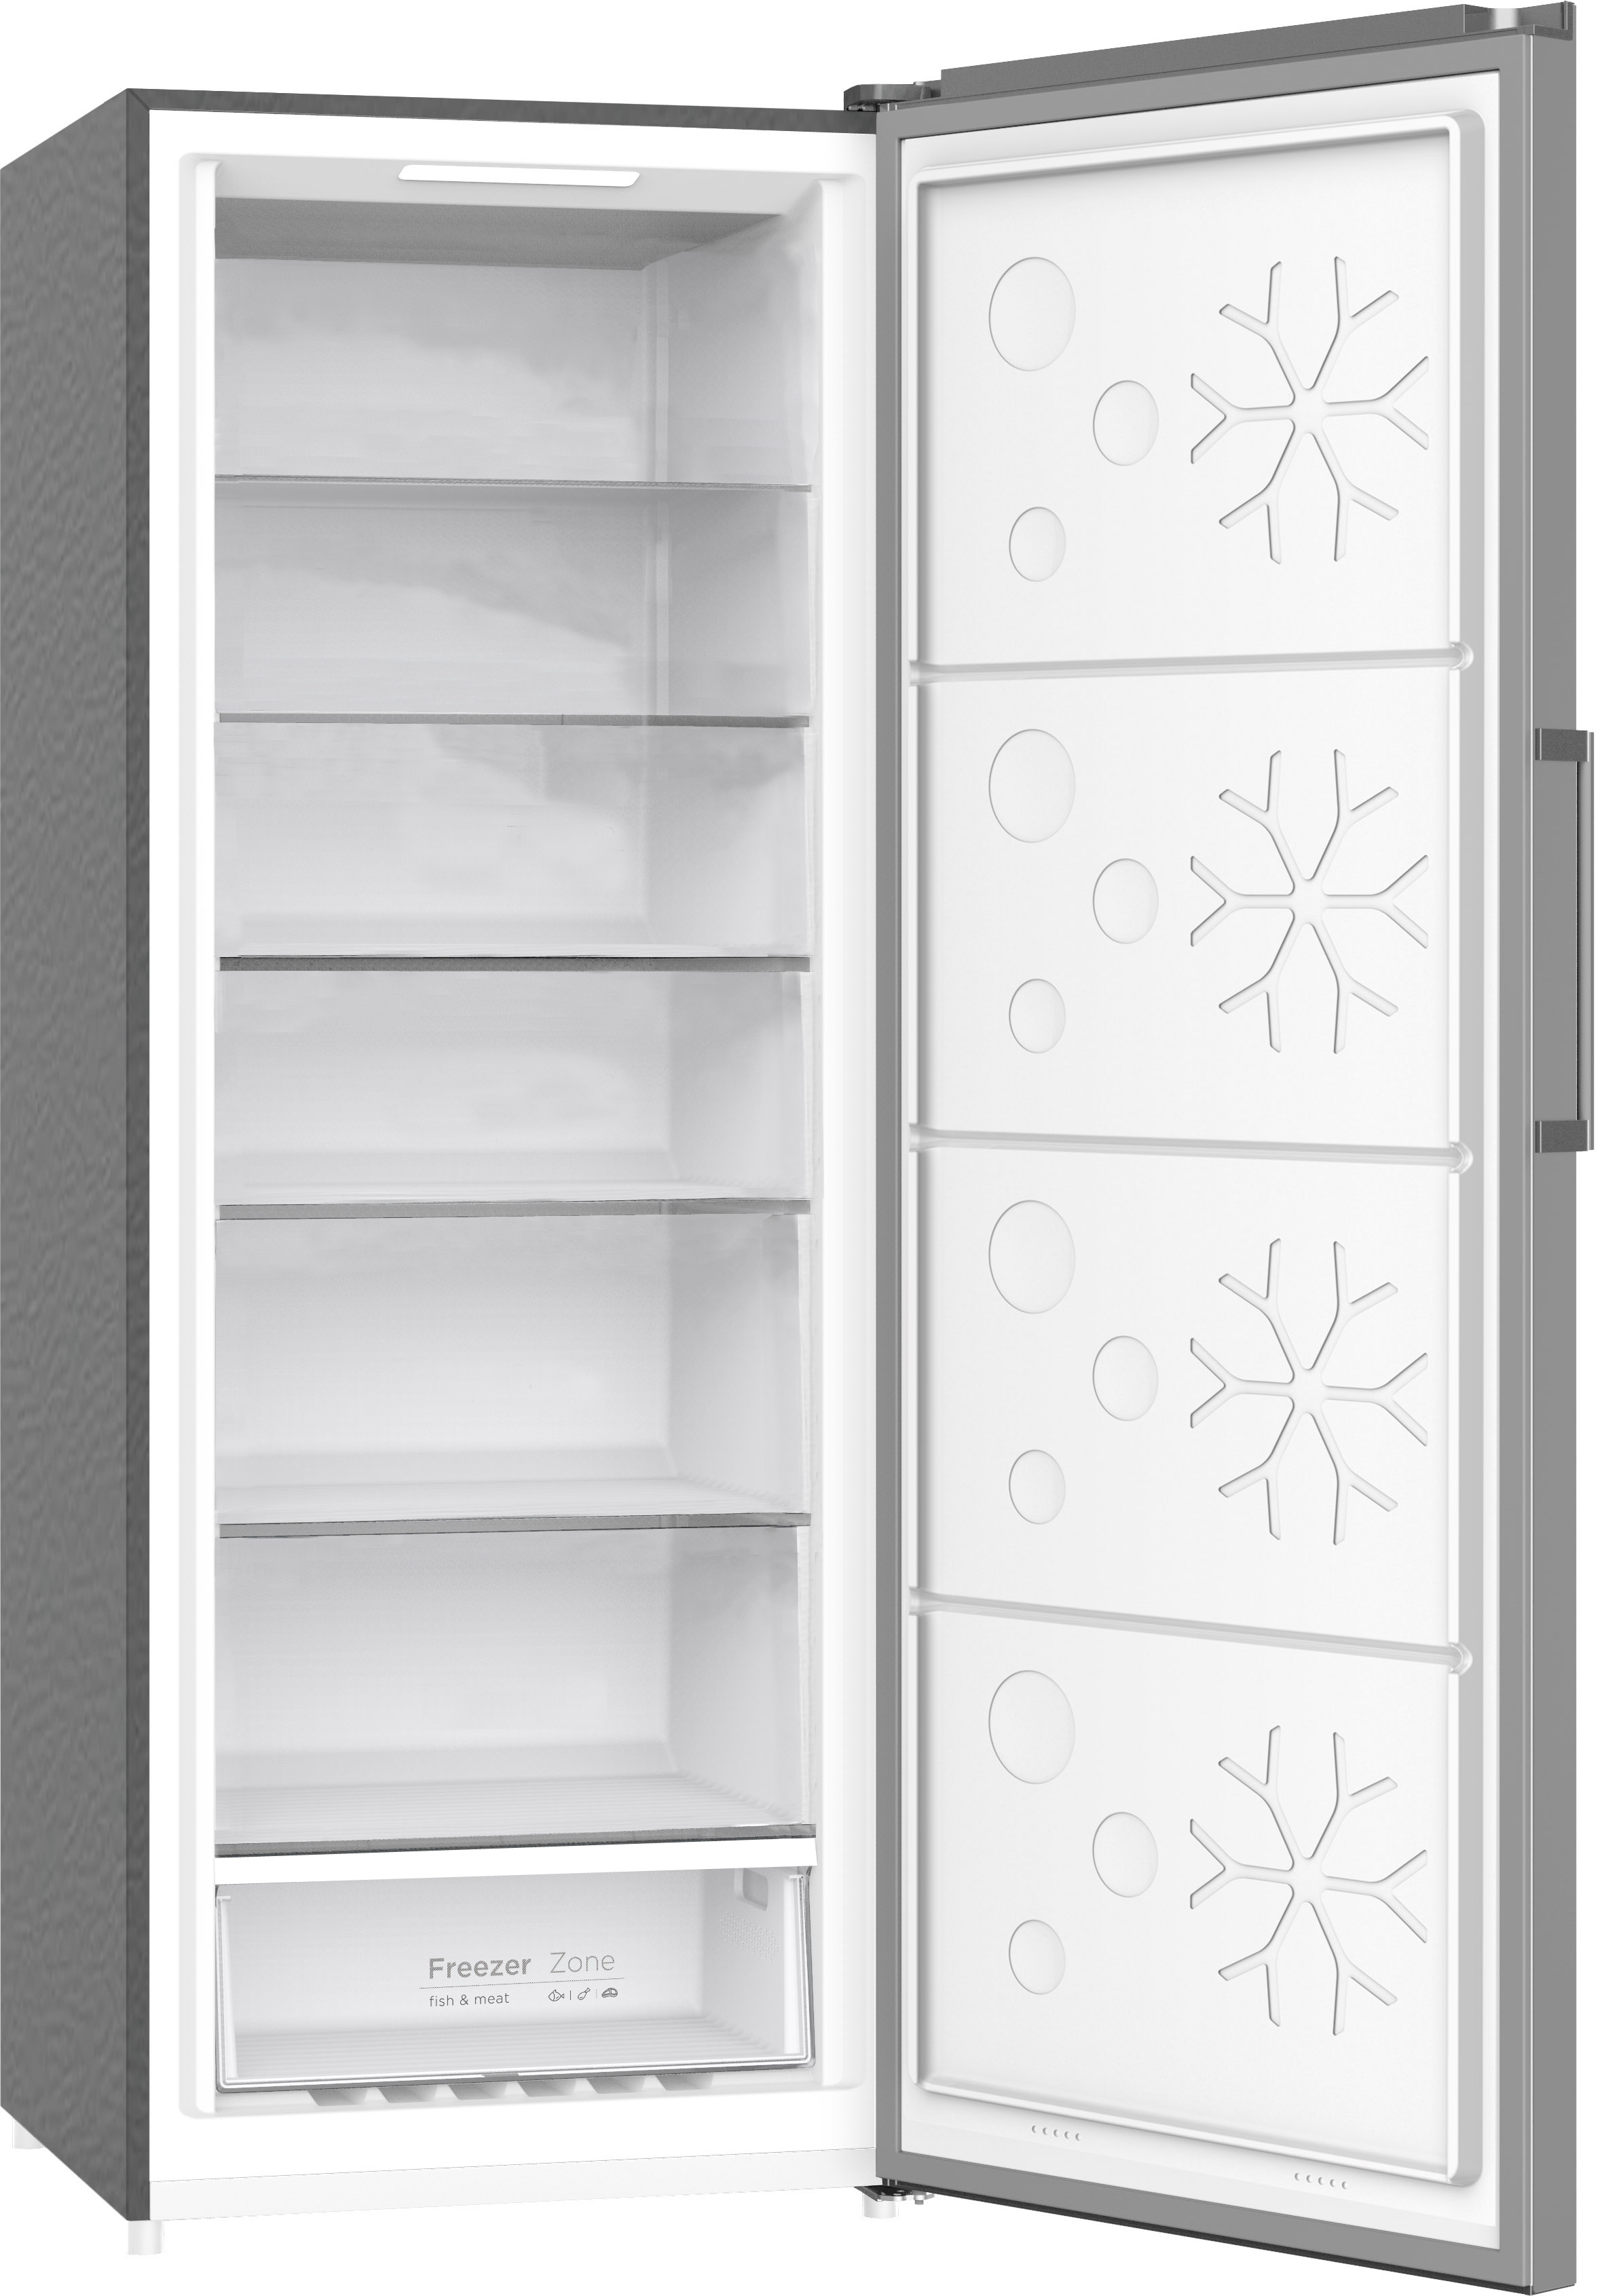 FR1350SS - Upright Freezer Stainless Steel